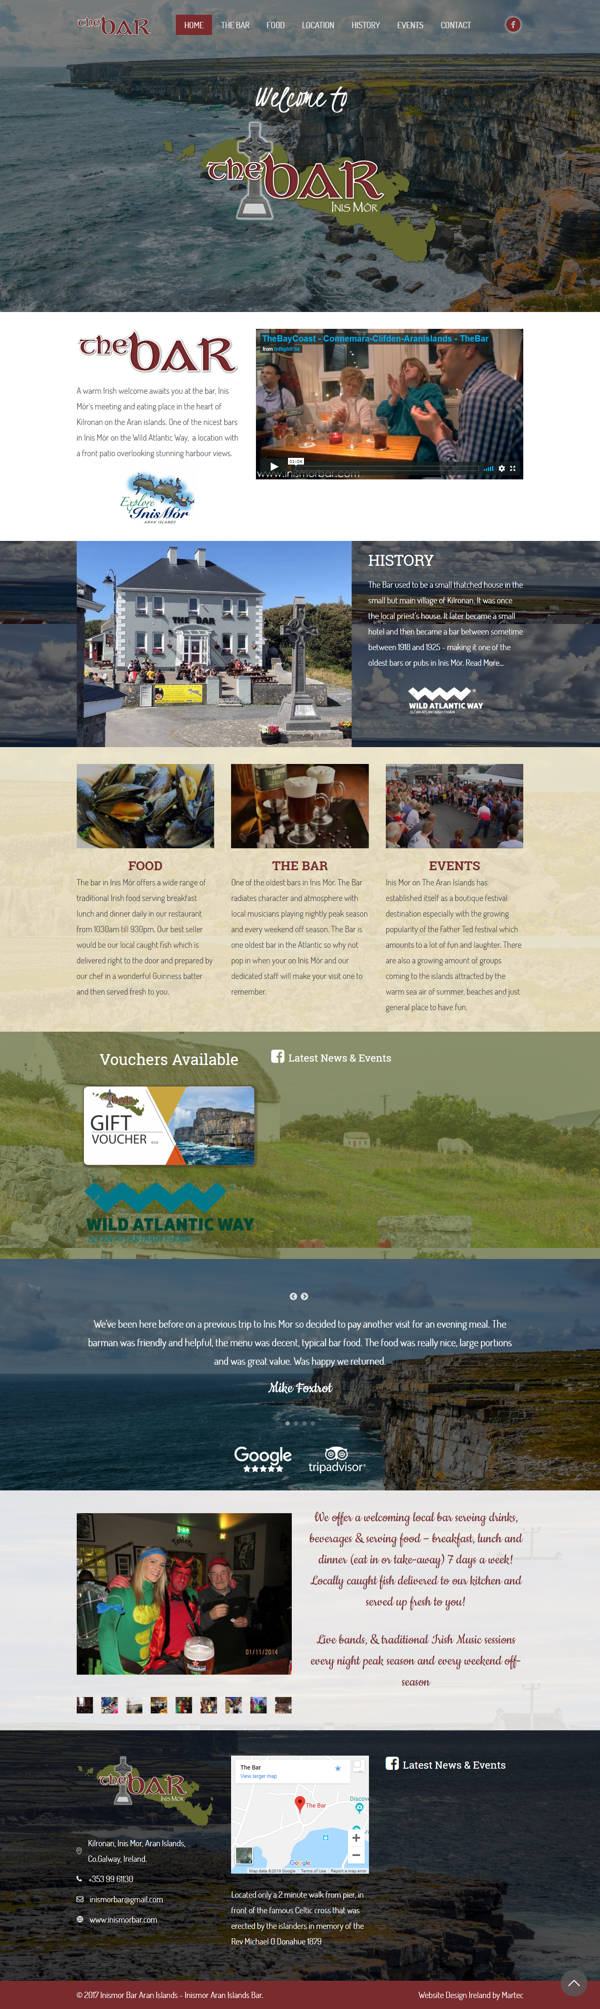 Inismor Bar Aran Islands – Inismor Aran Islands Bar